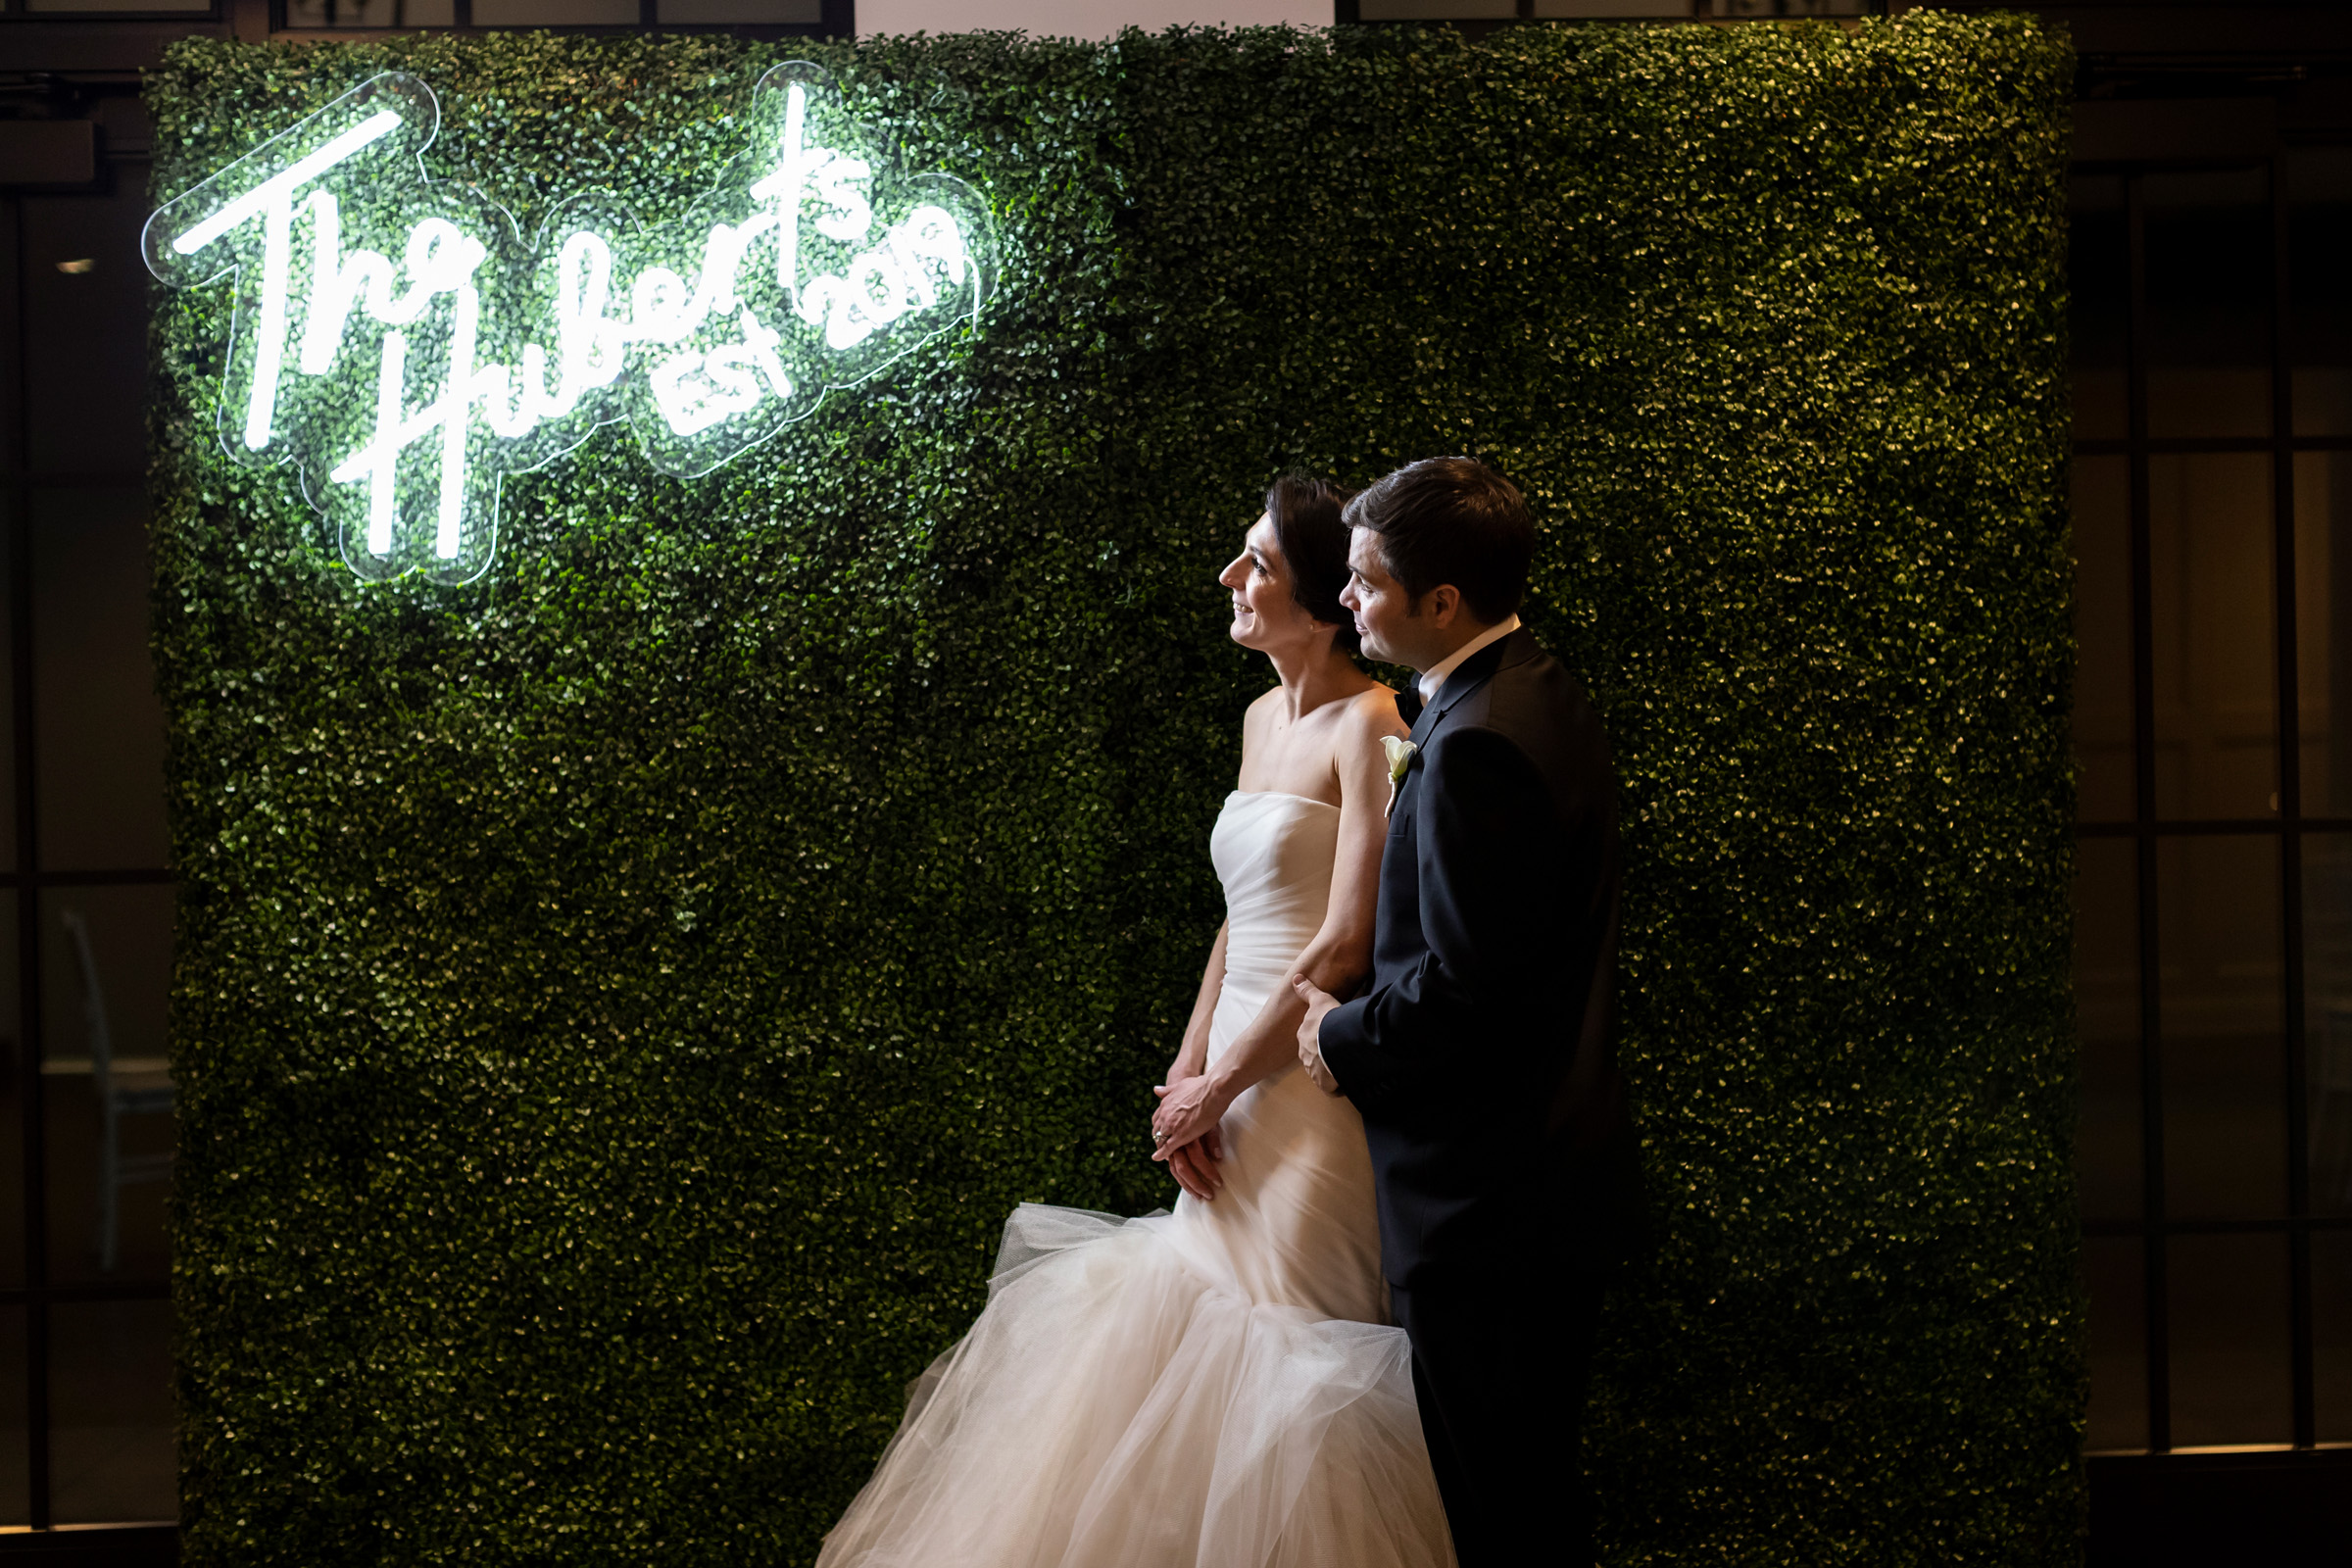 couple-at-neon-sign-with-their-name-berit-bizjak-photography